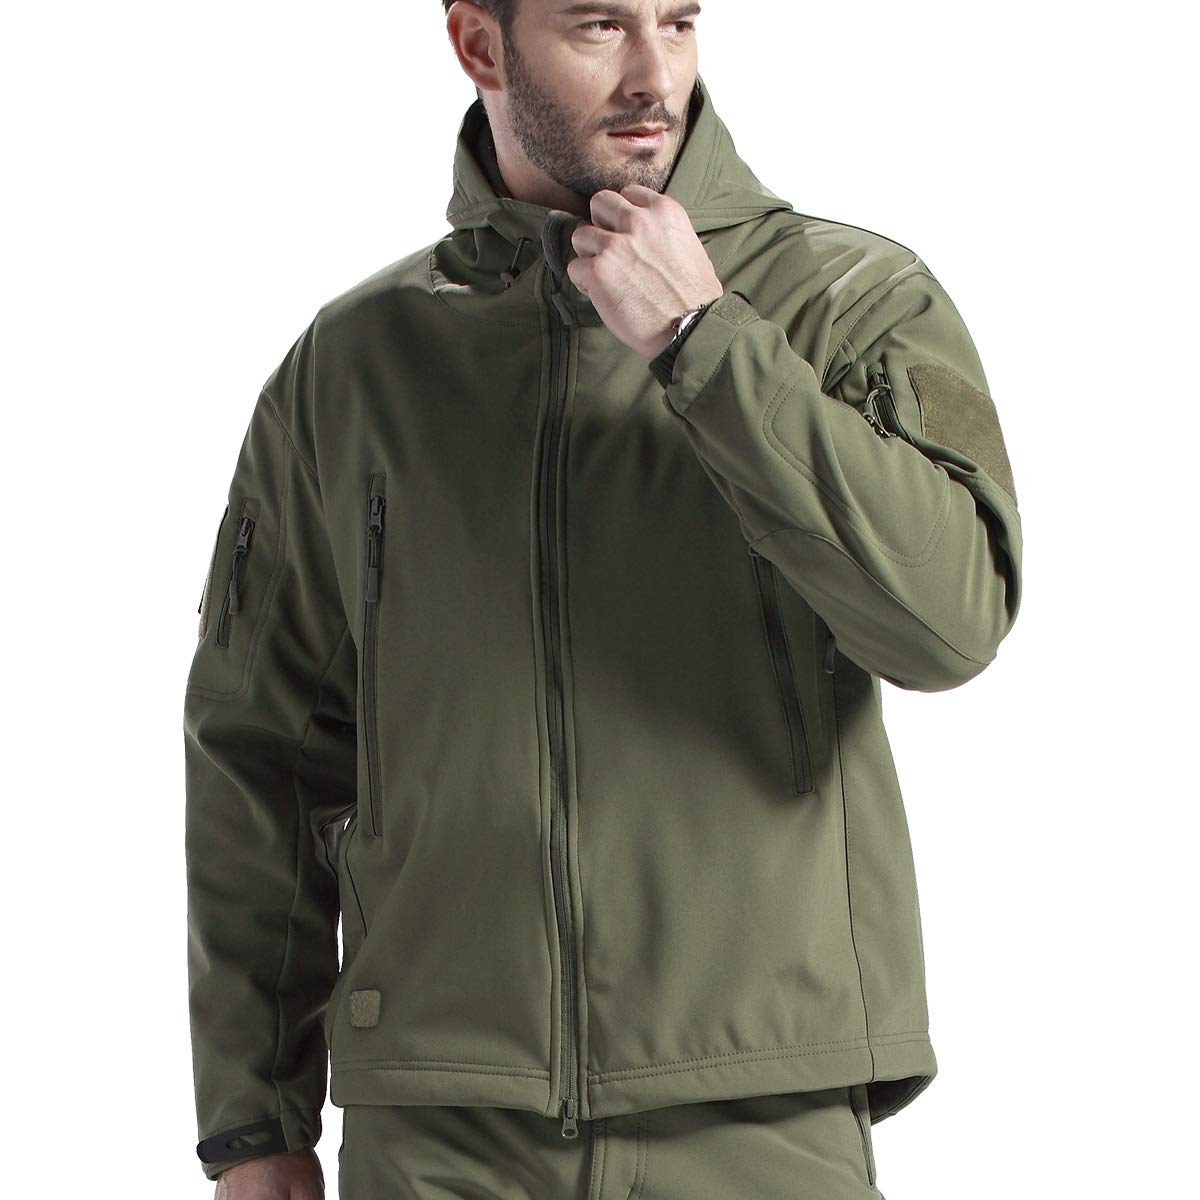 FREE SOLDIER Men's Fleece Lined Softshell Tactical Jacket Breathable Water Resistant Windproof Jacket Winter Snowboarding Skiing Hooded Jacket(Army Green XXX-Large/US) by FREE SOLDIER